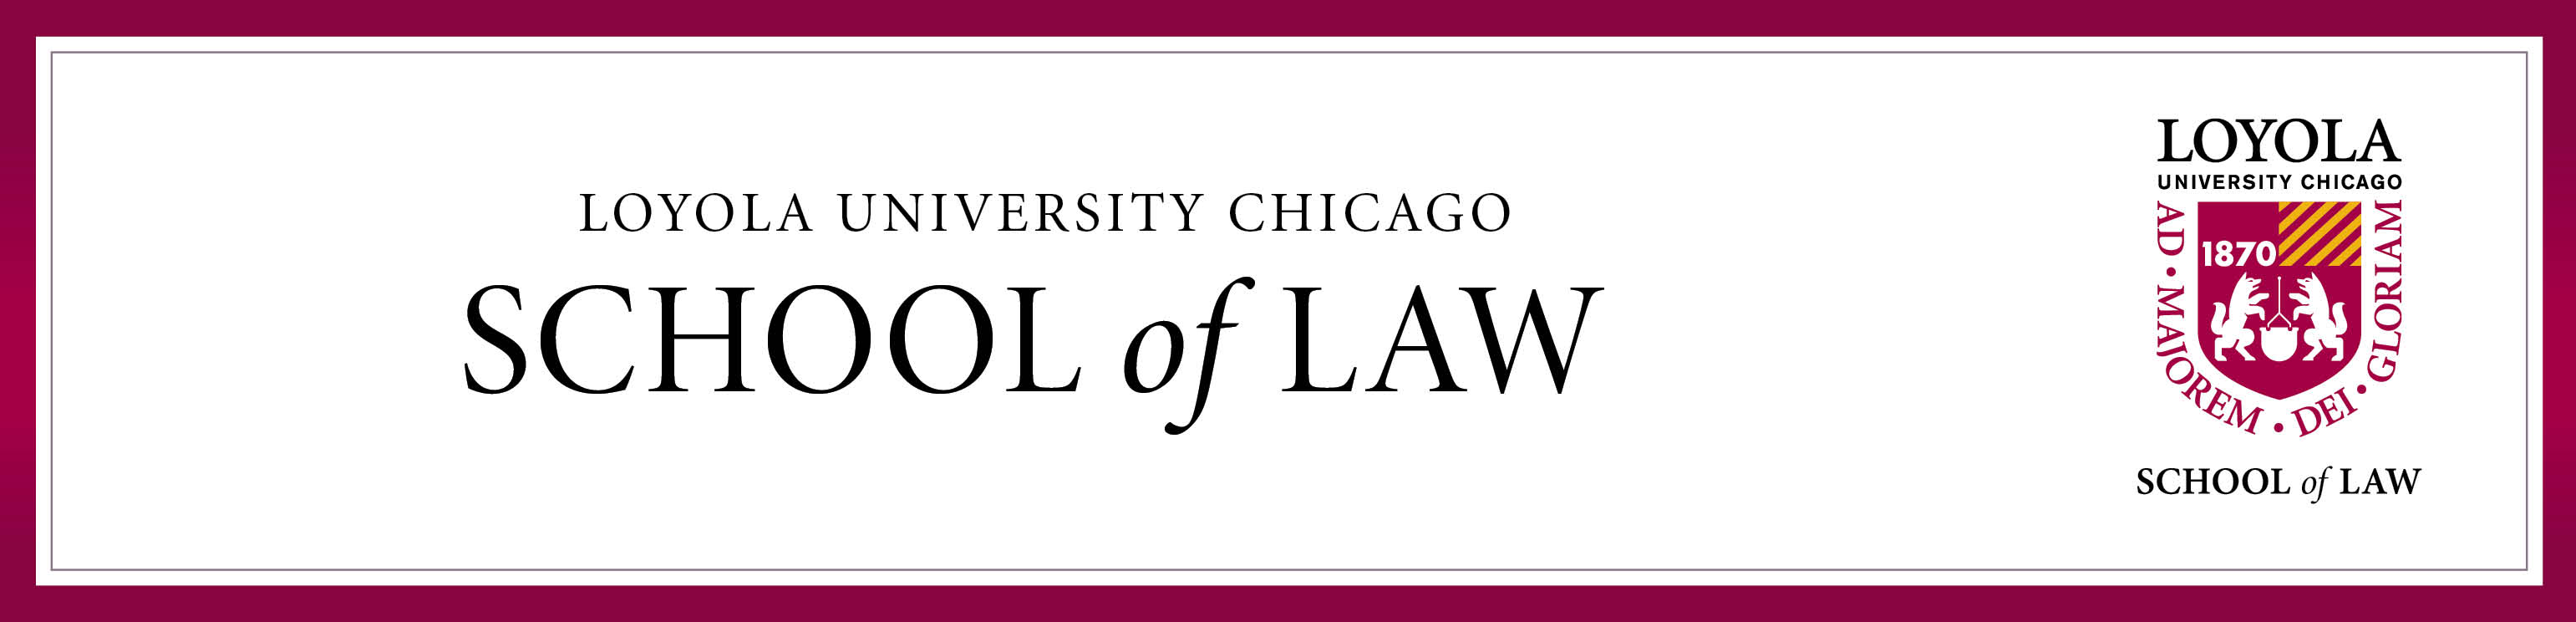 Generic Law School Header